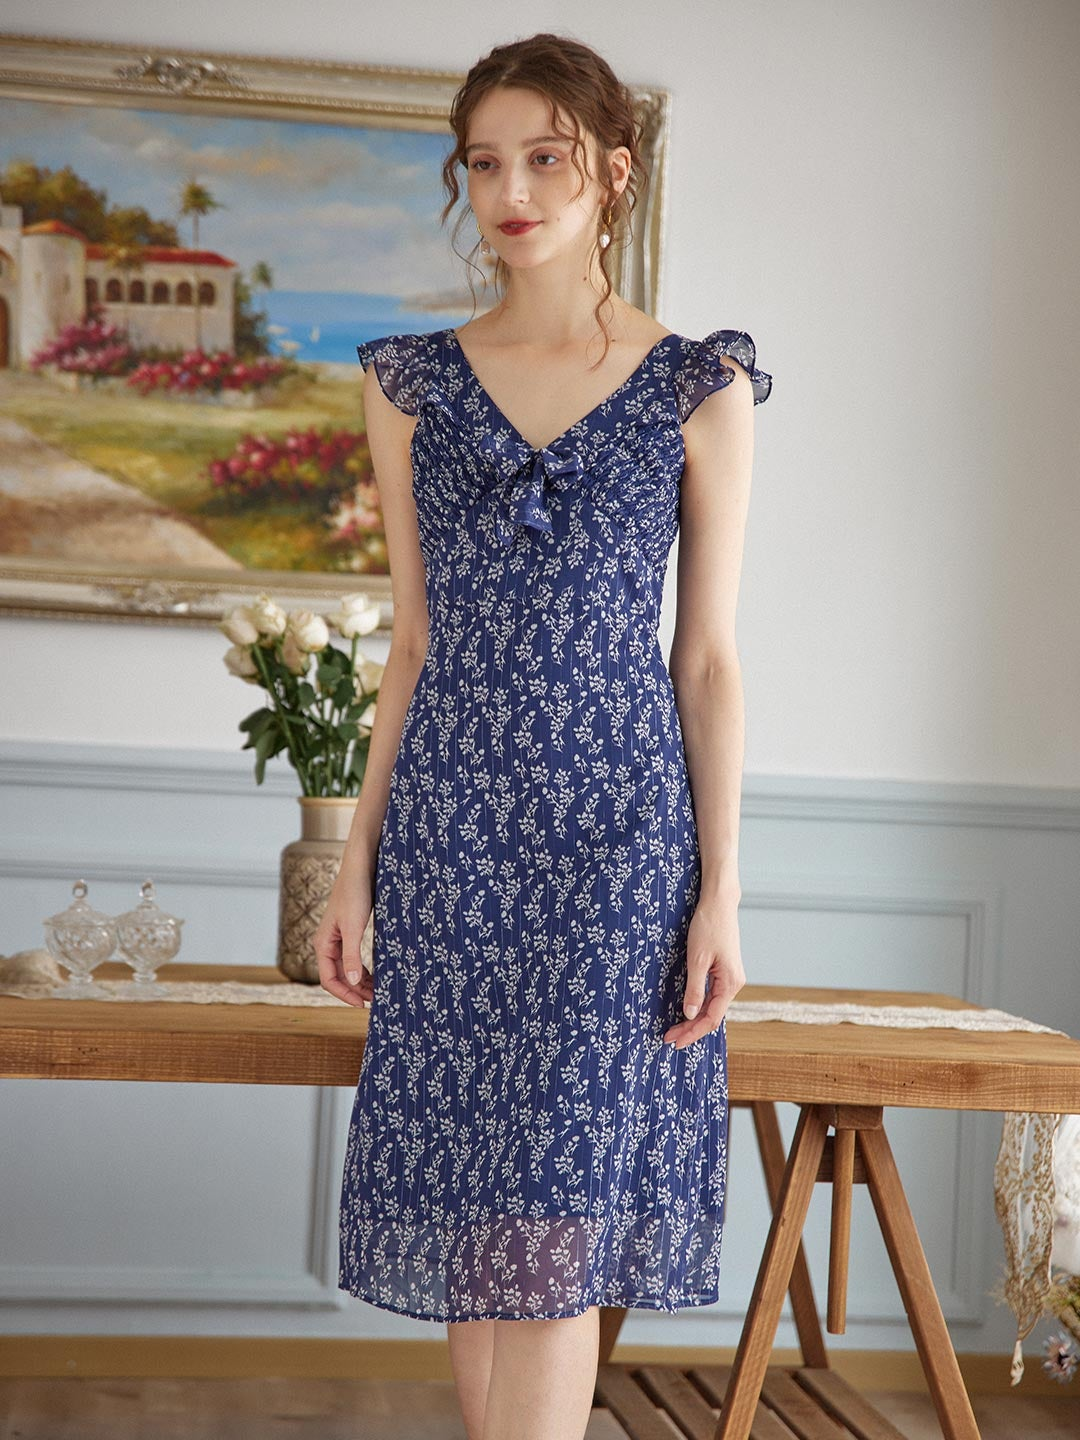 model wearing the v-neck ruffle sleeve dress in navy blue with white flowers all over it